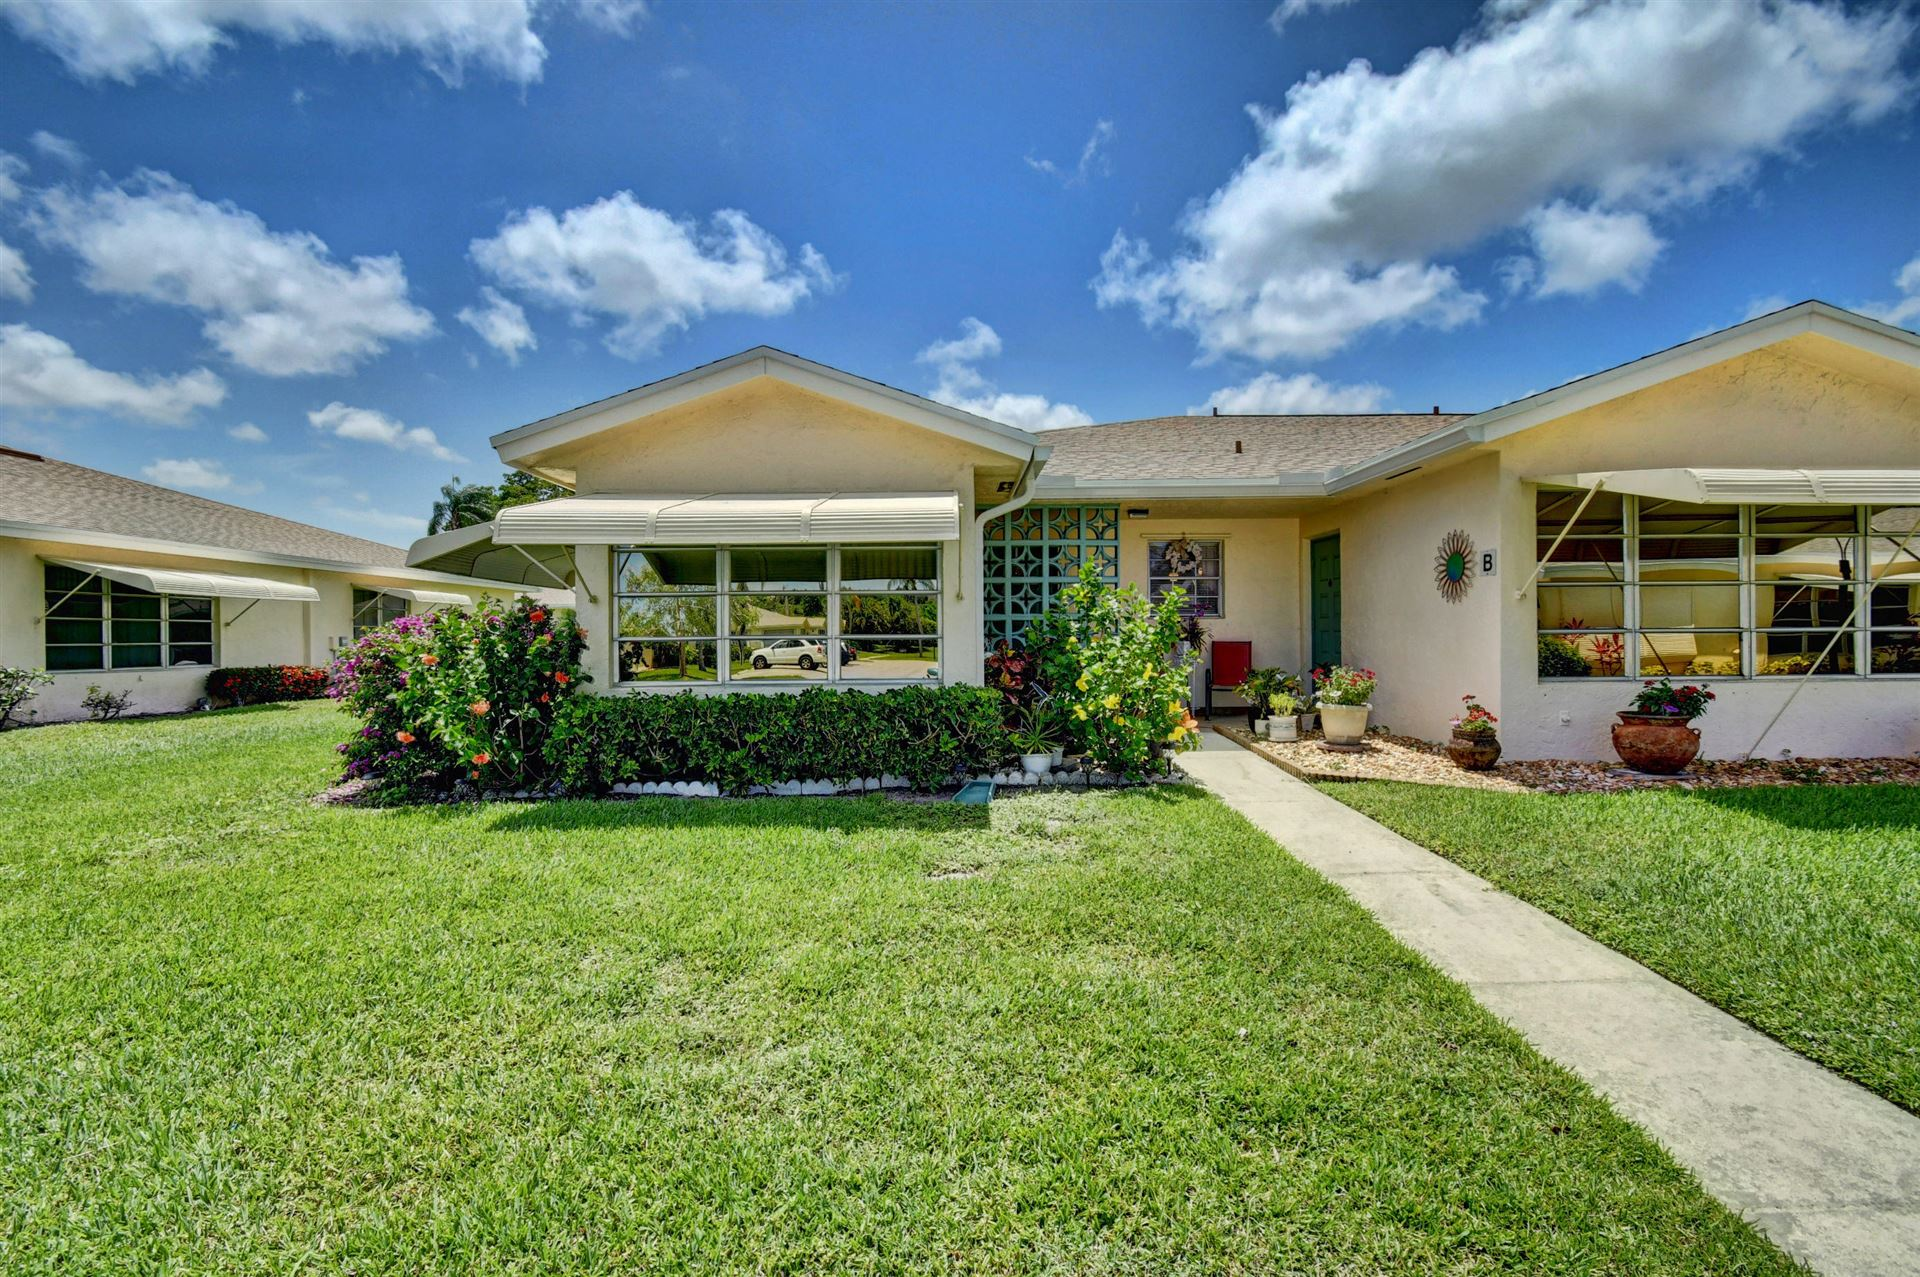 Photo of 5085 Lakefront Boulevard #A, Delray Beach, FL 33484 (MLS # RX-10675613)